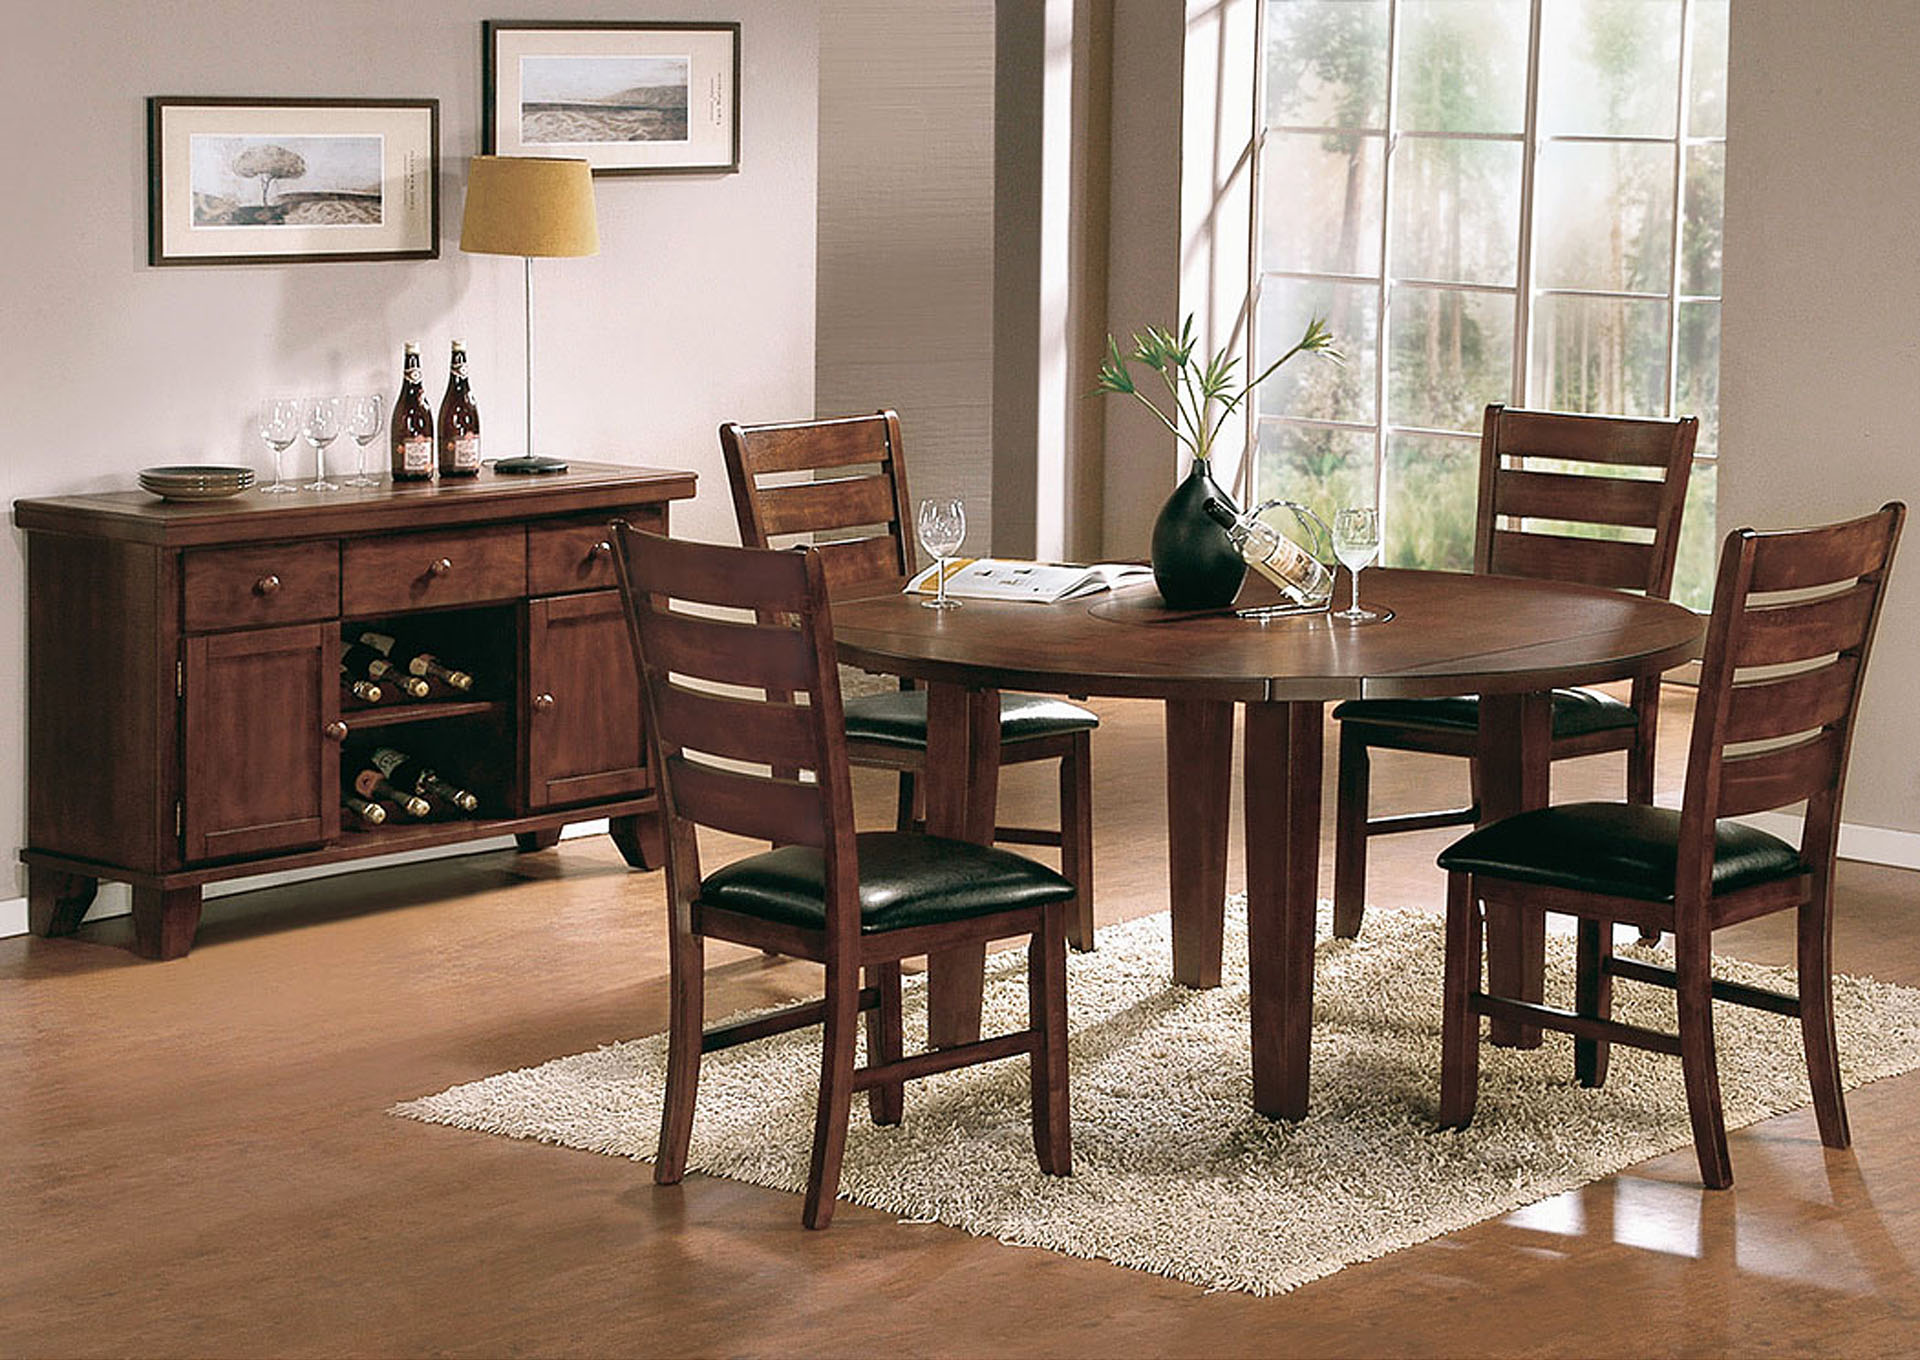 Ameillia Round Dining Table W/Lazy Susan,Homelegance